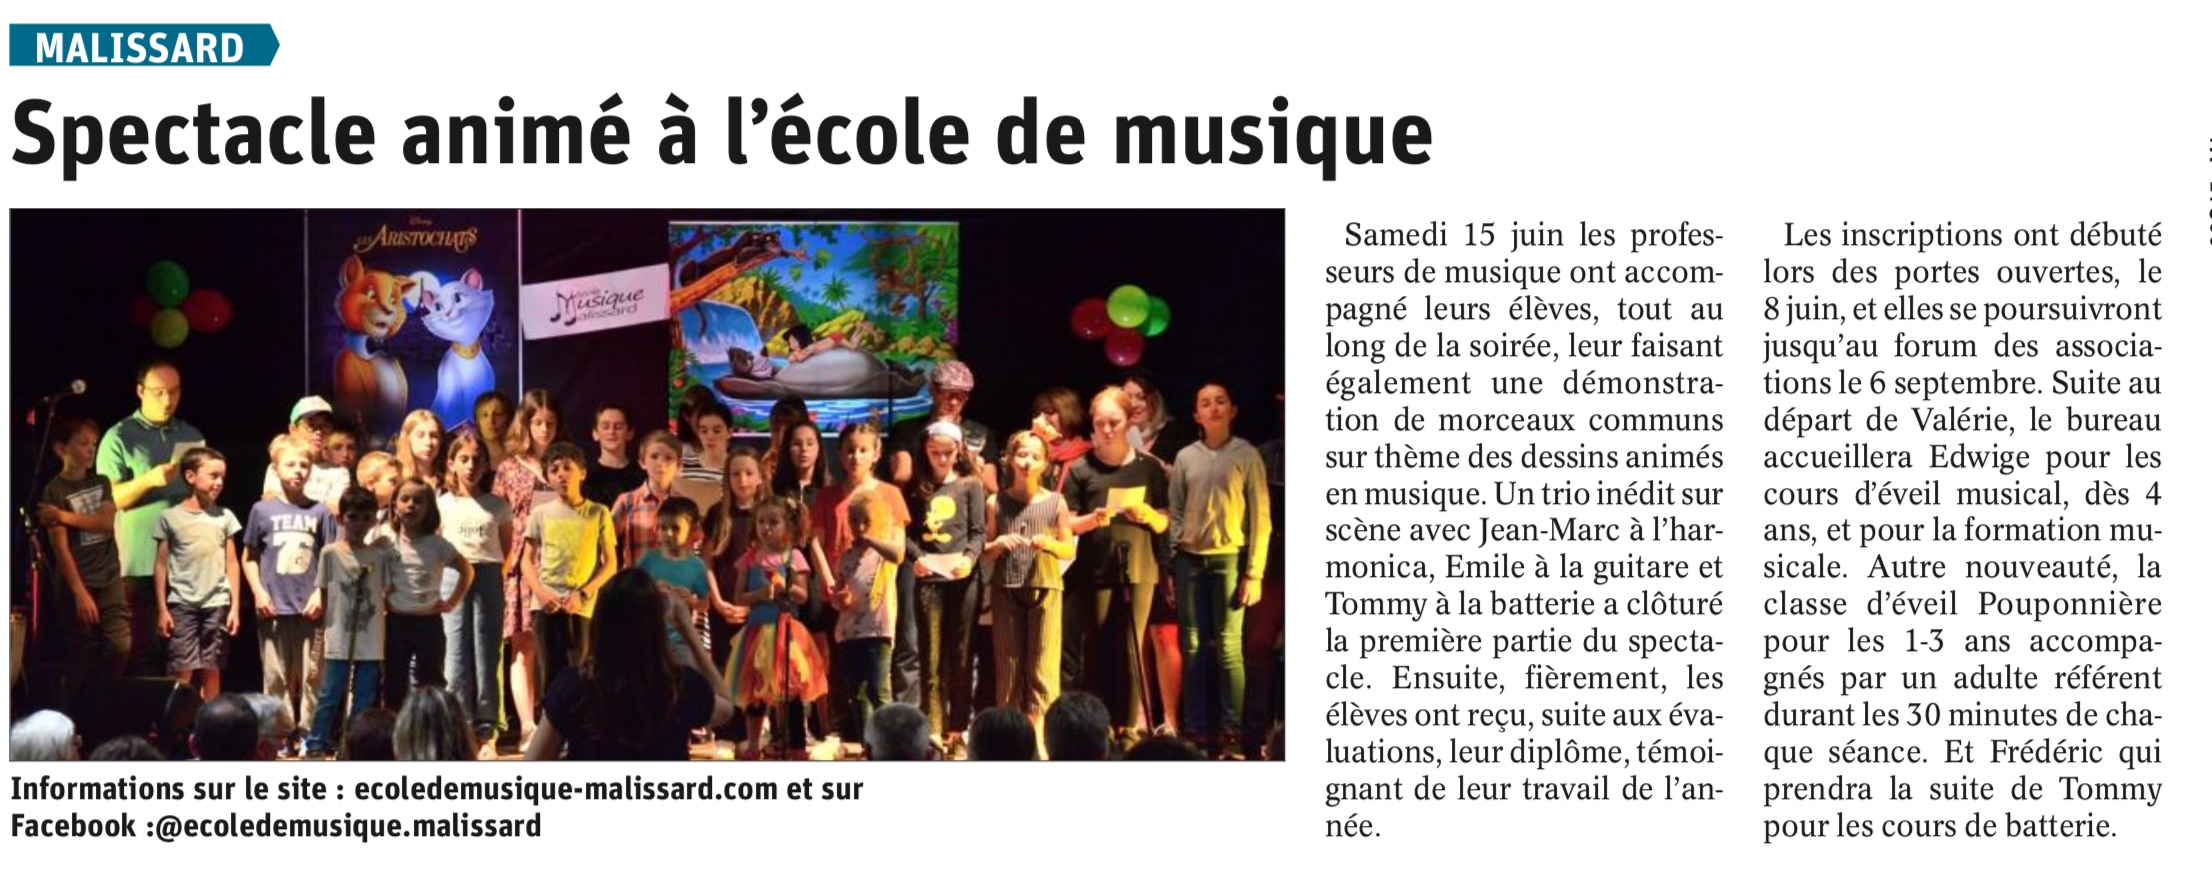 spectacle 15 juin 2019